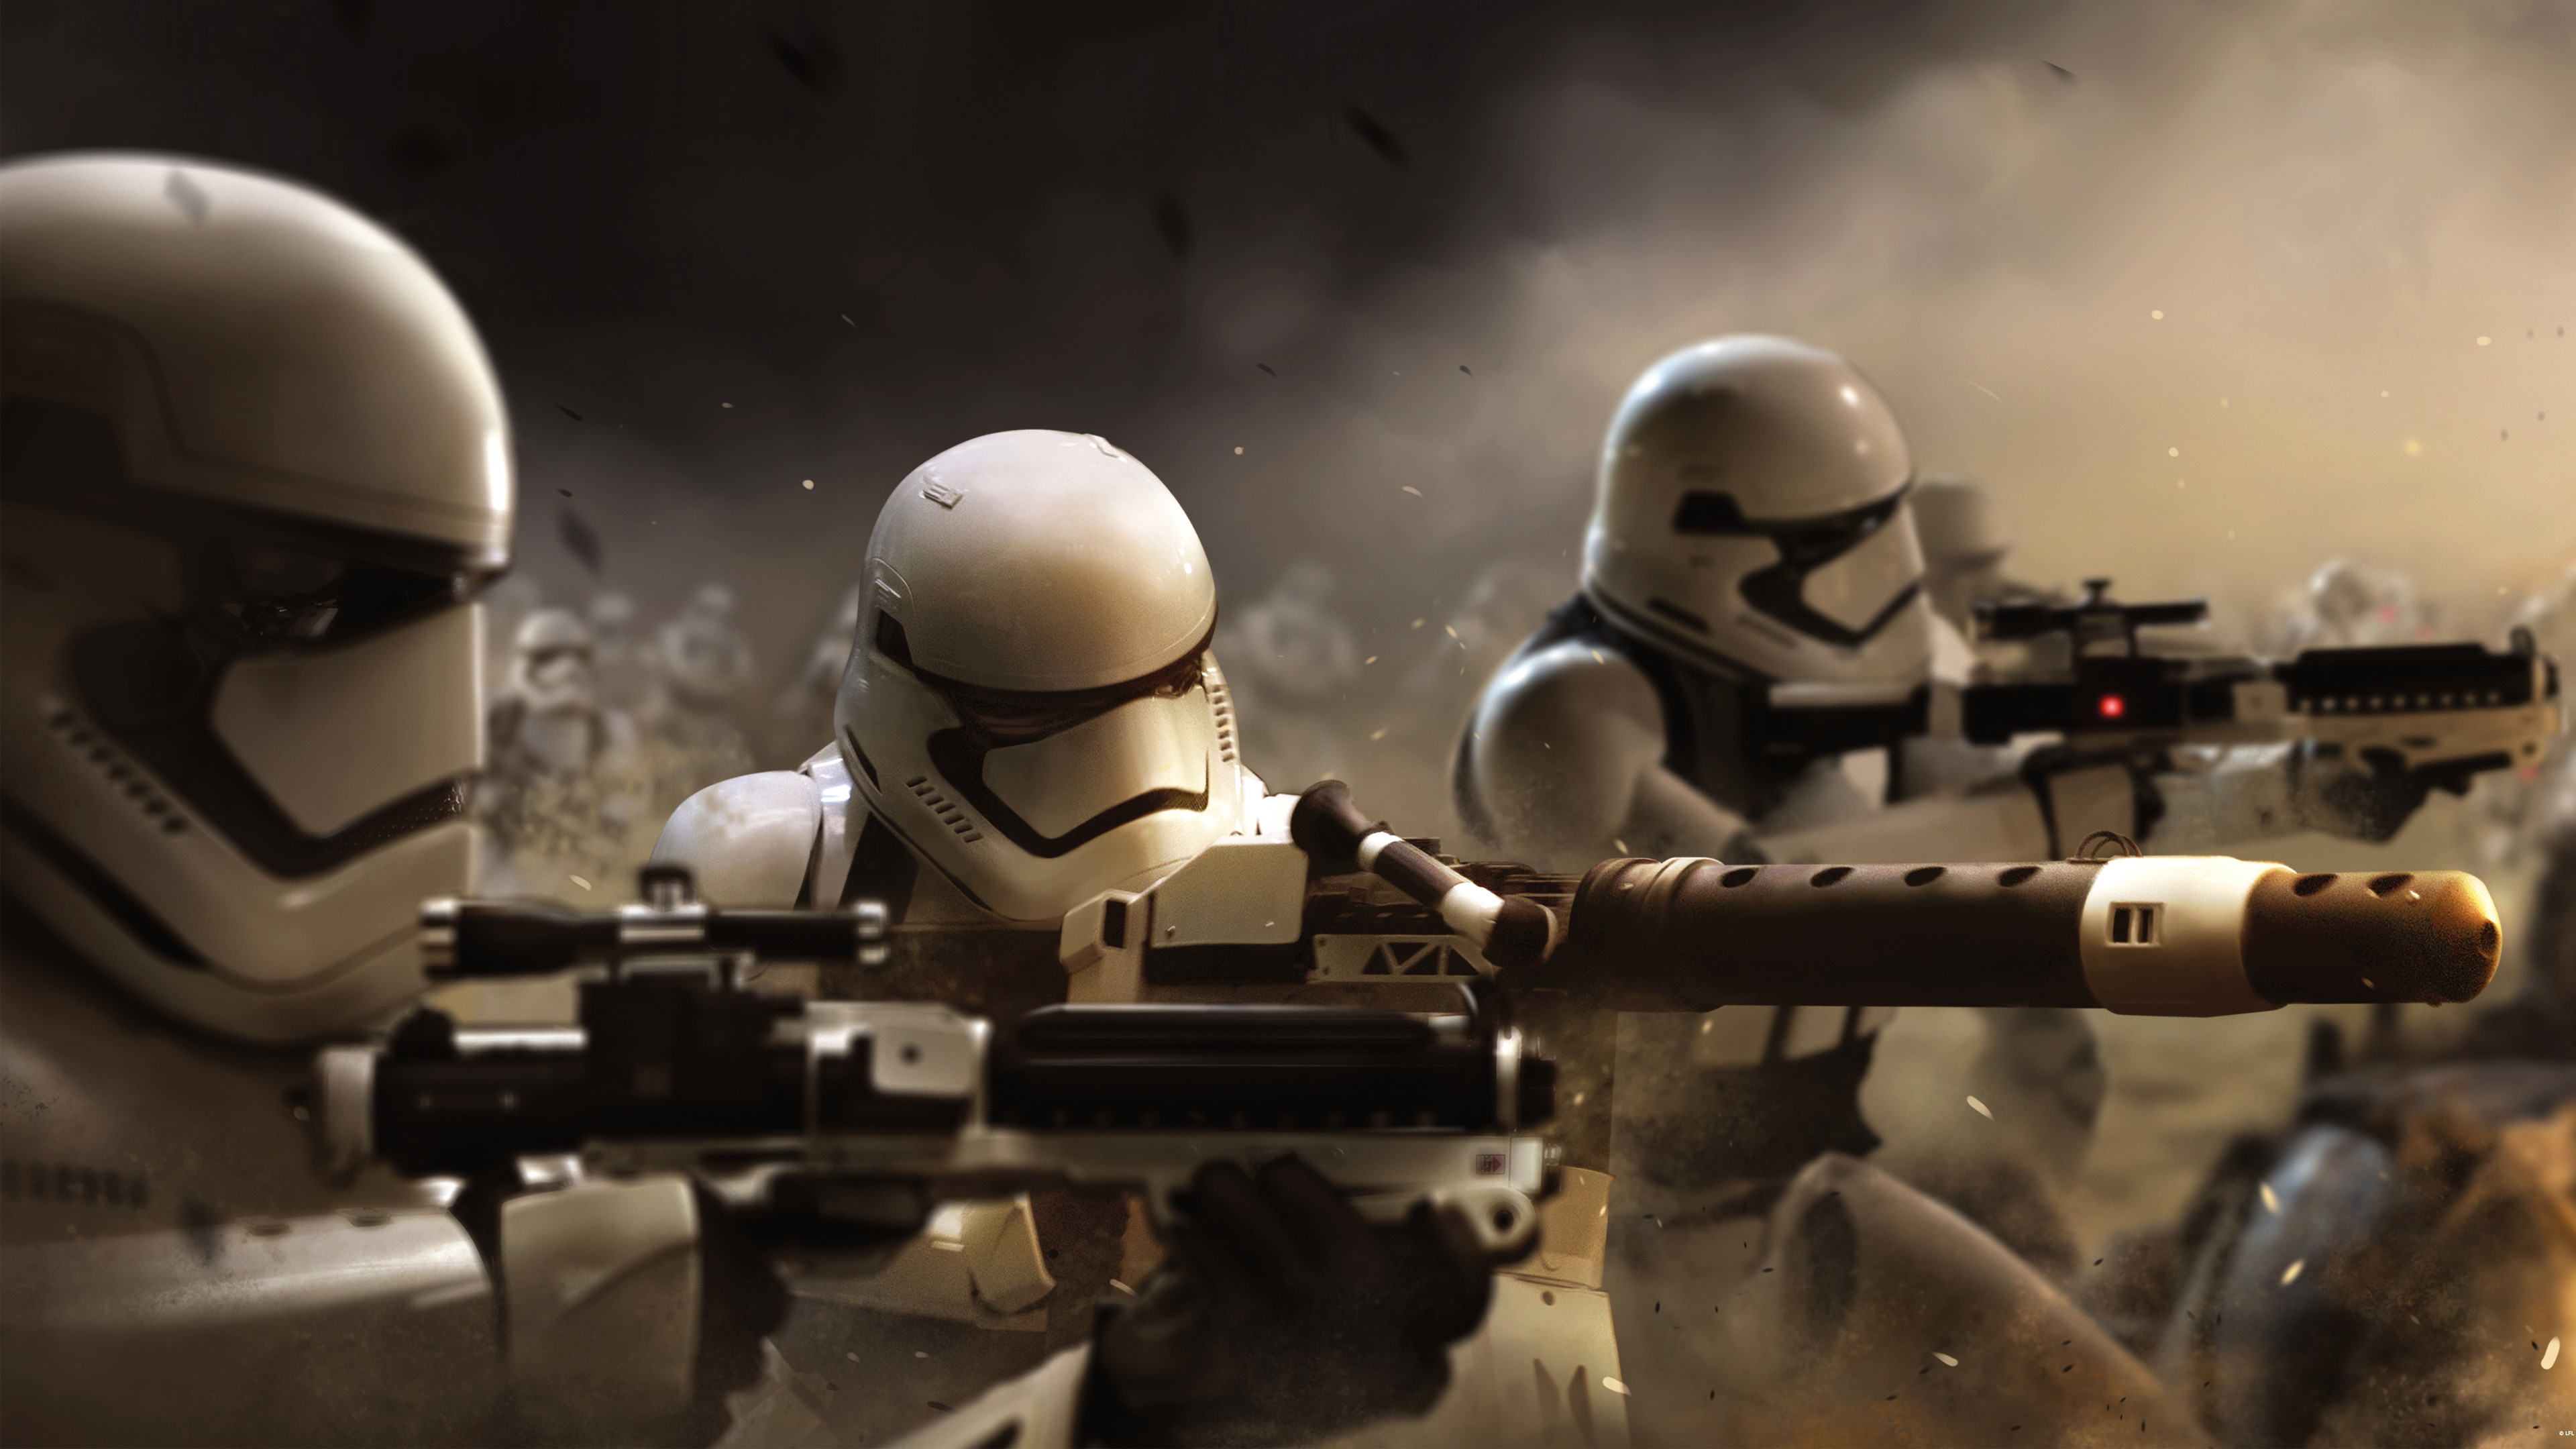 Res: 3840x2160, Tags: Stormtroopers